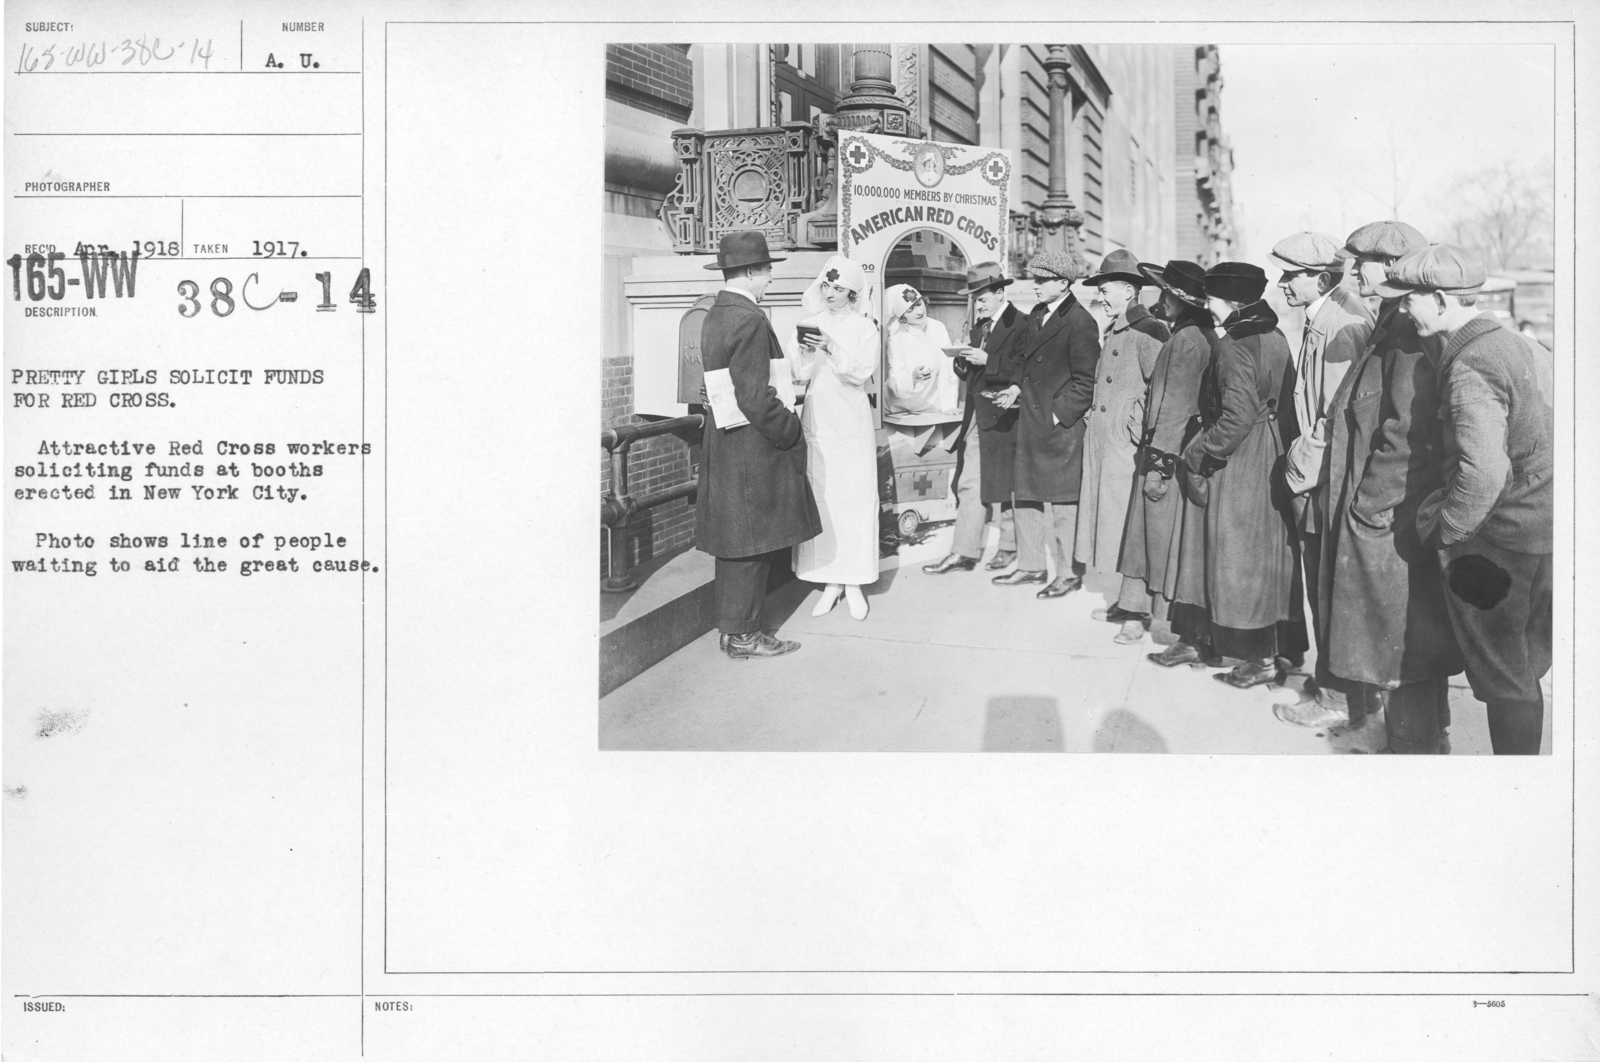 American Red Cross - Soliciting Funds - Personal Appeal - Pretty girls solicit funds for Red Cross. Attractive Red Cross workers soliciting funds at booths erected in new York City. Photo shows line of people waiting to aid the great cause